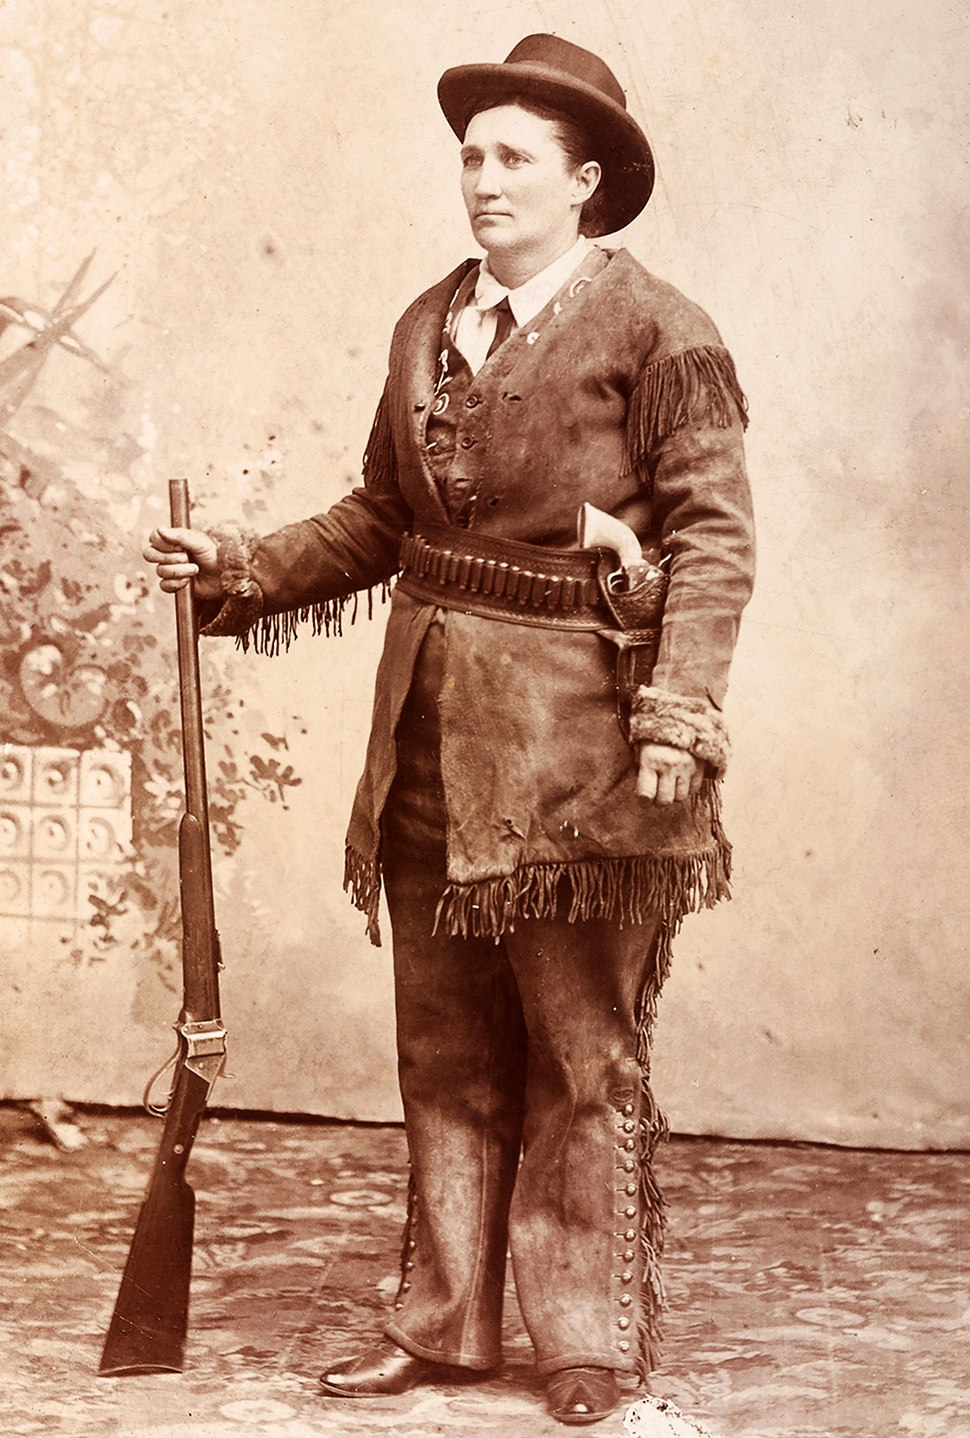 Calamity Jane by CE Finn, c1880s-crop